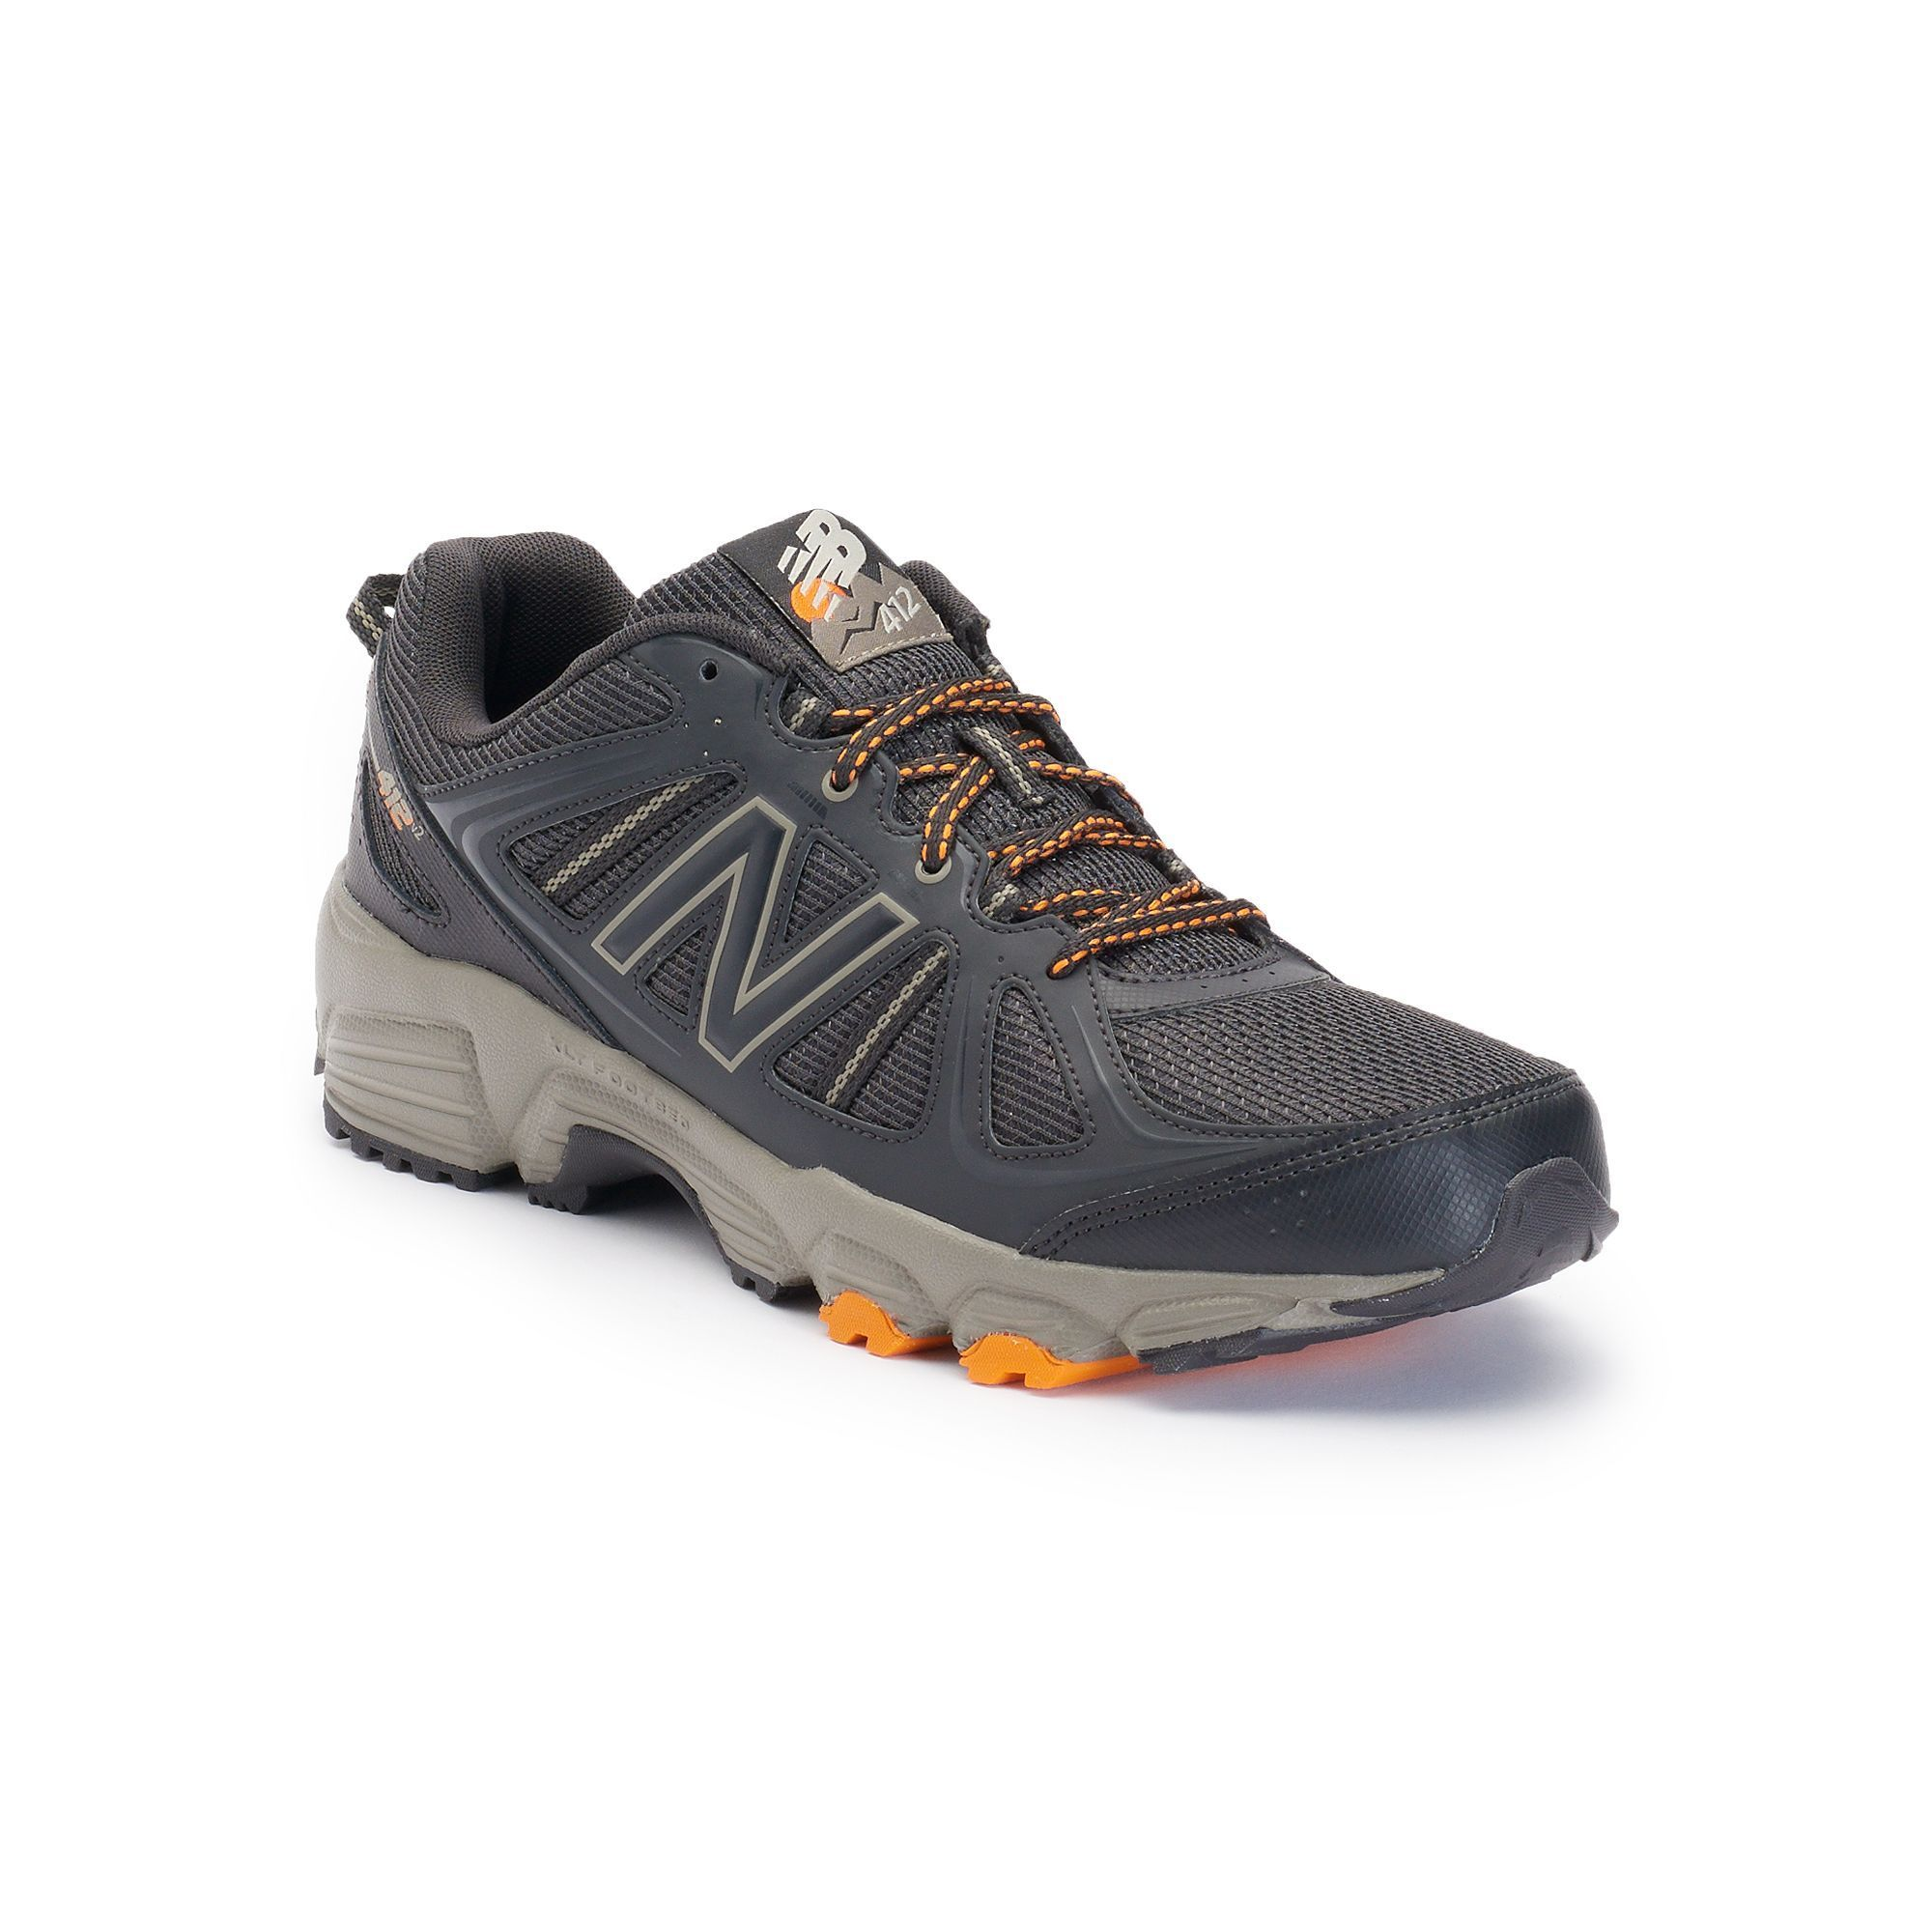 New Balance 412 Men's Trail Running Shoes Trail running